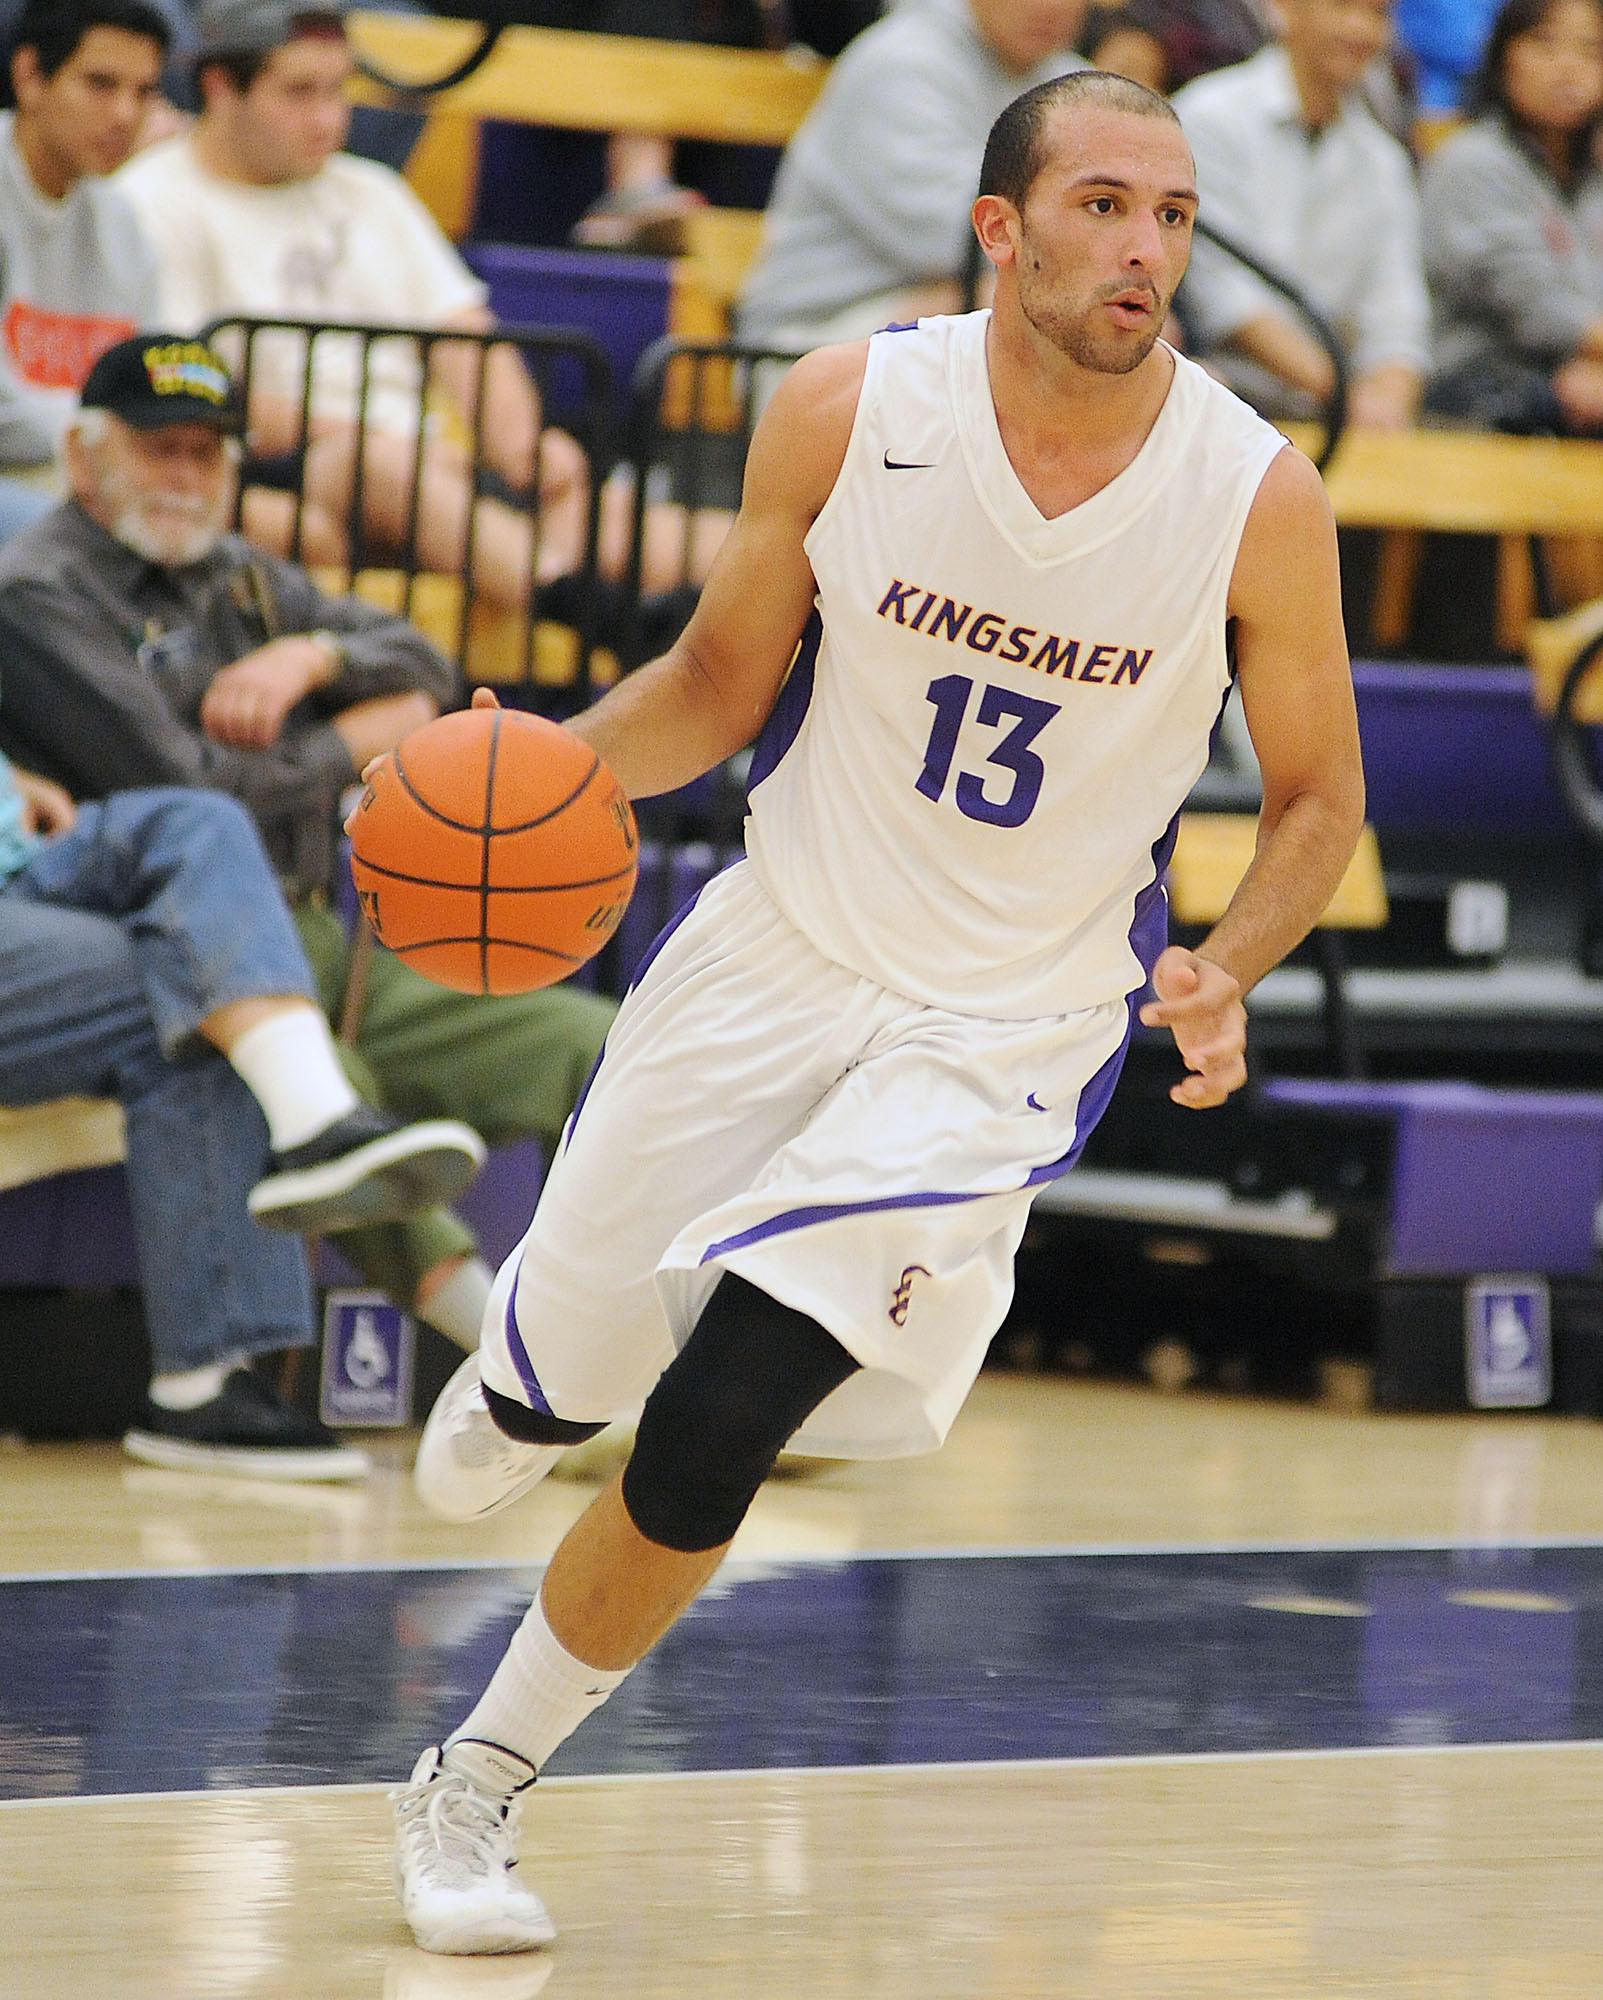 Coltrane Powdrill of California Lutheran University men's basketball team.